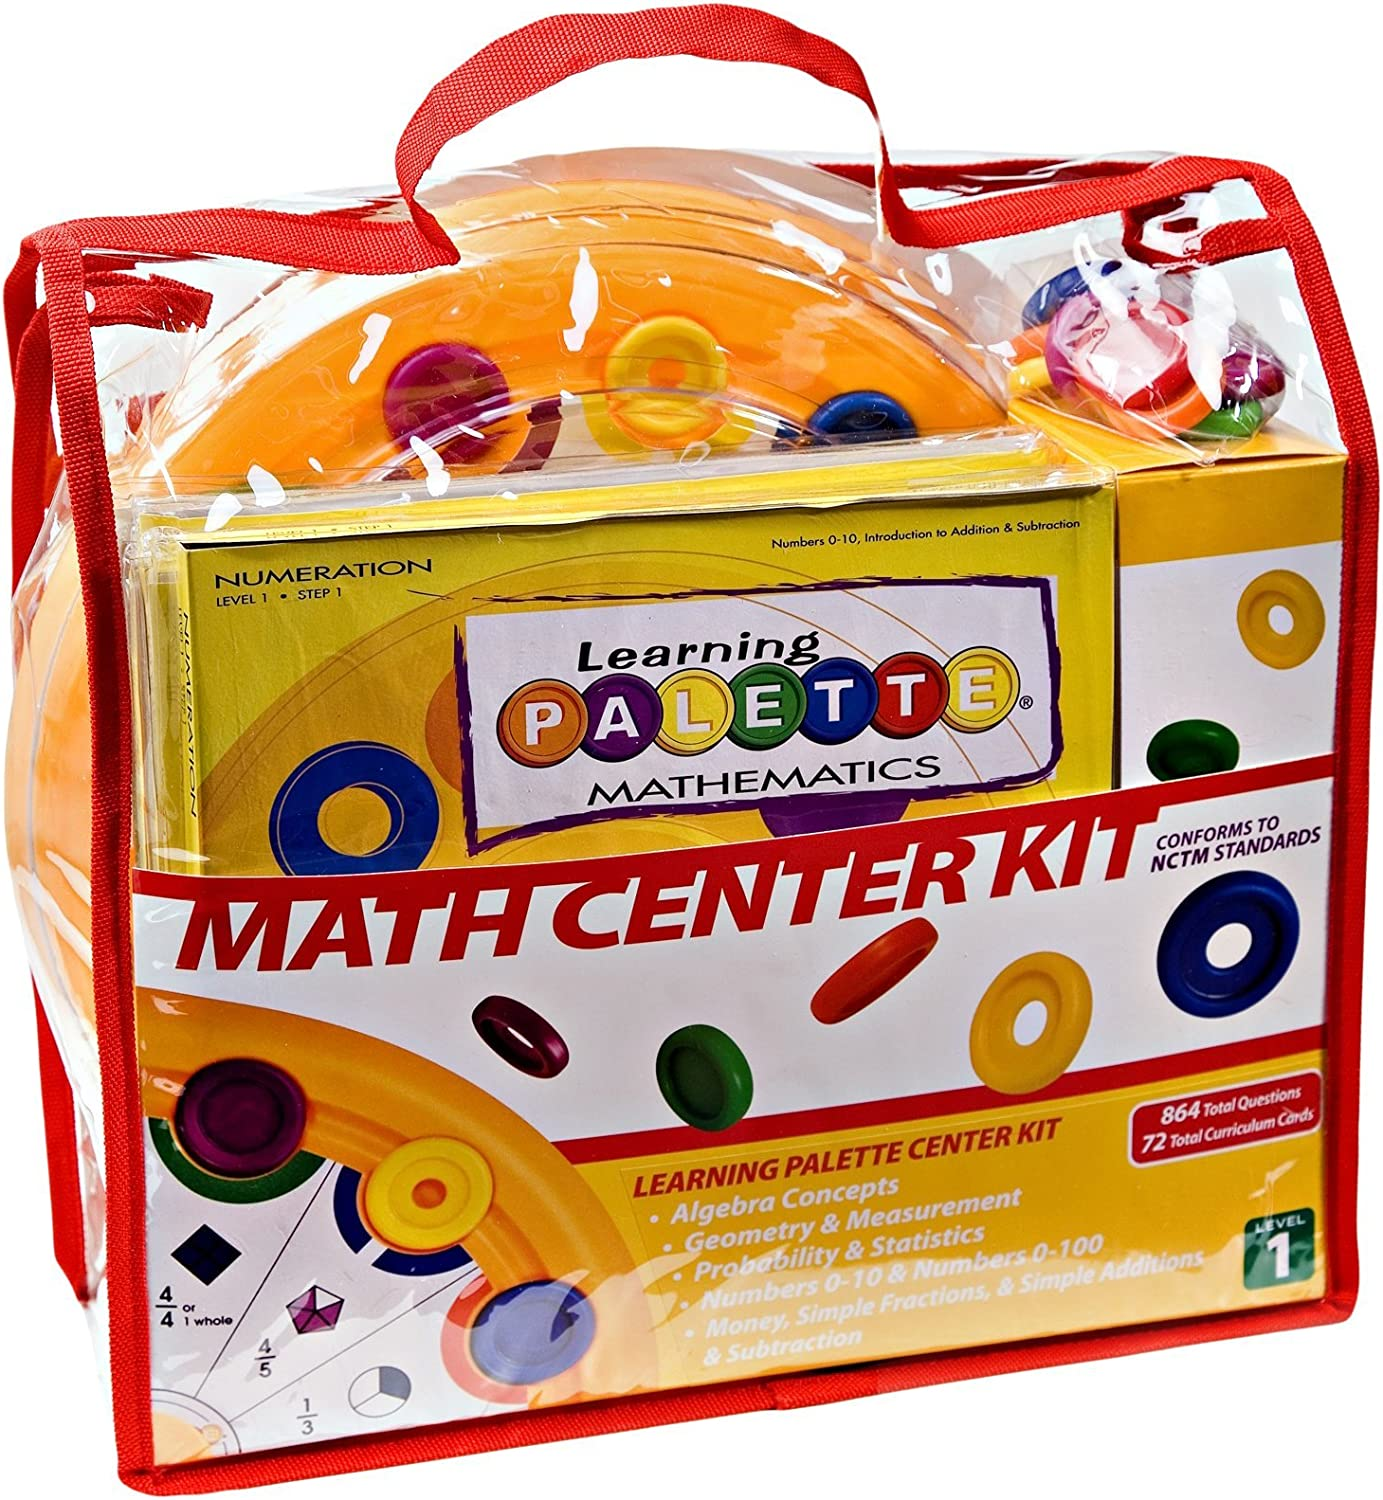 Learning Wrap-ups Palette 5th Grade Math Base Kit B005PFEW6S  | Authentische Garantie